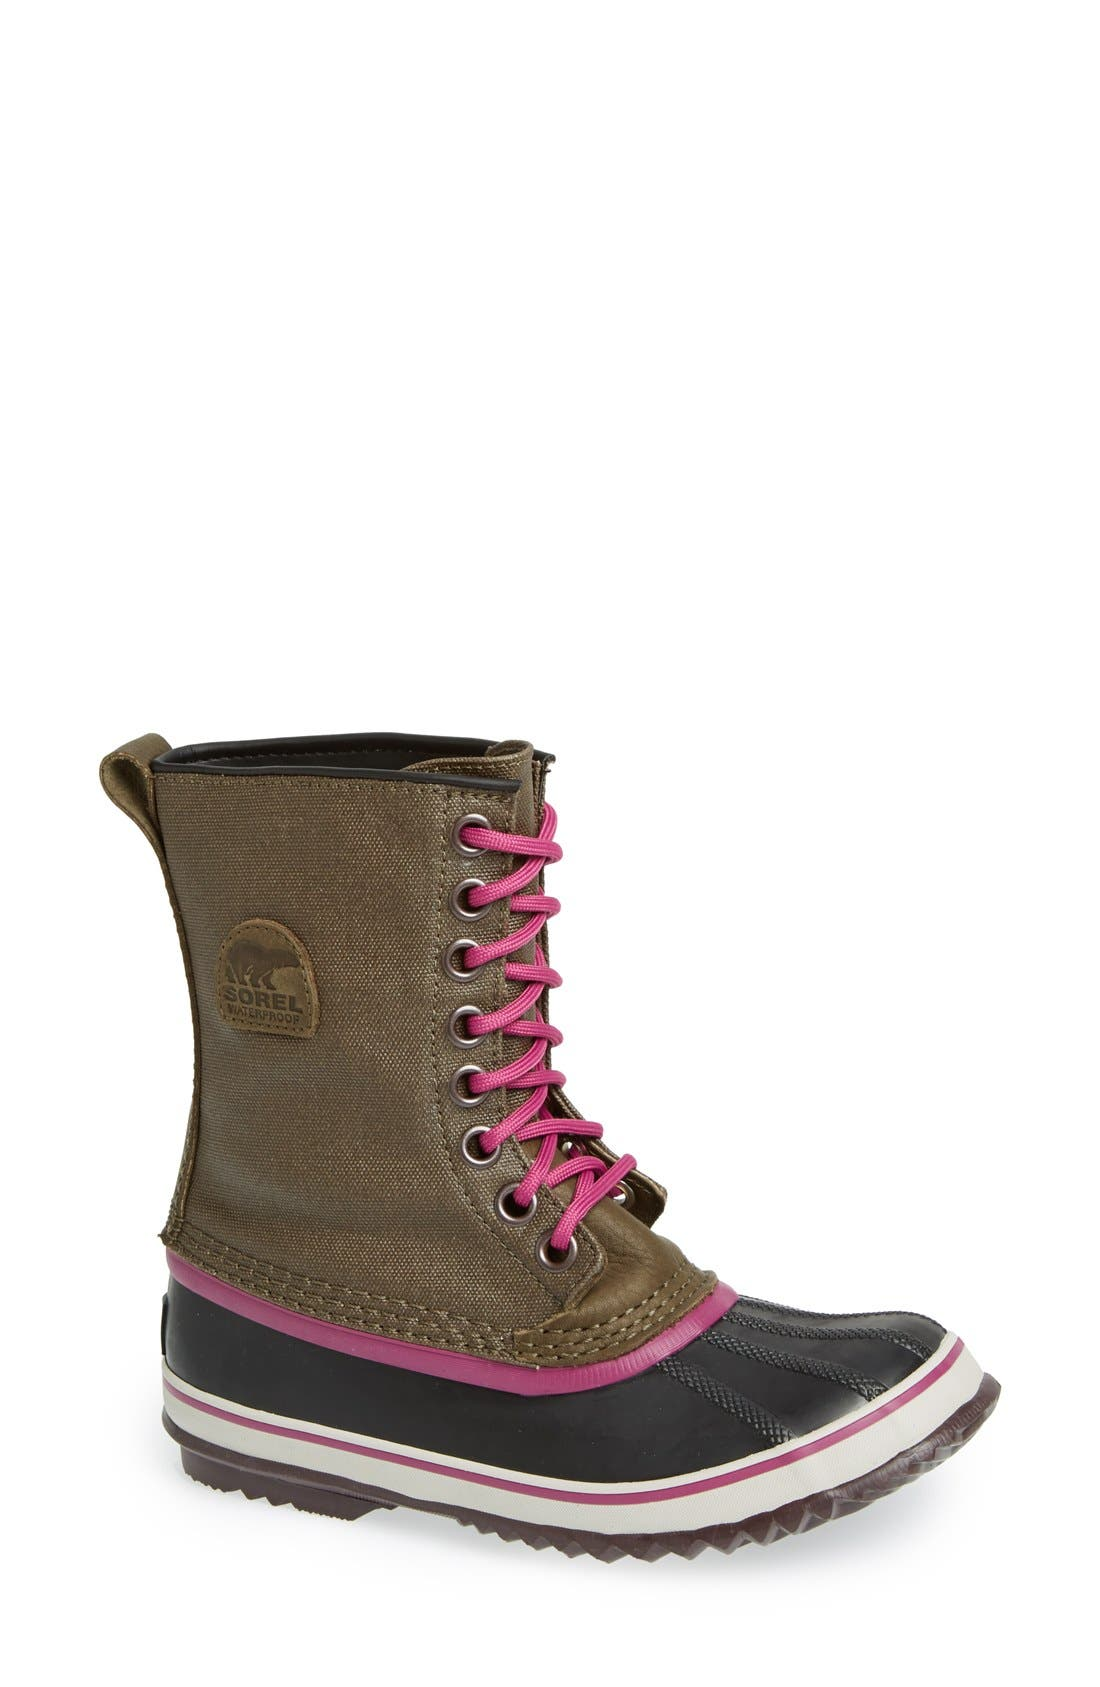 '1964 Premium' Waterproof Boot,                             Main thumbnail 1, color,                             Peatmoss